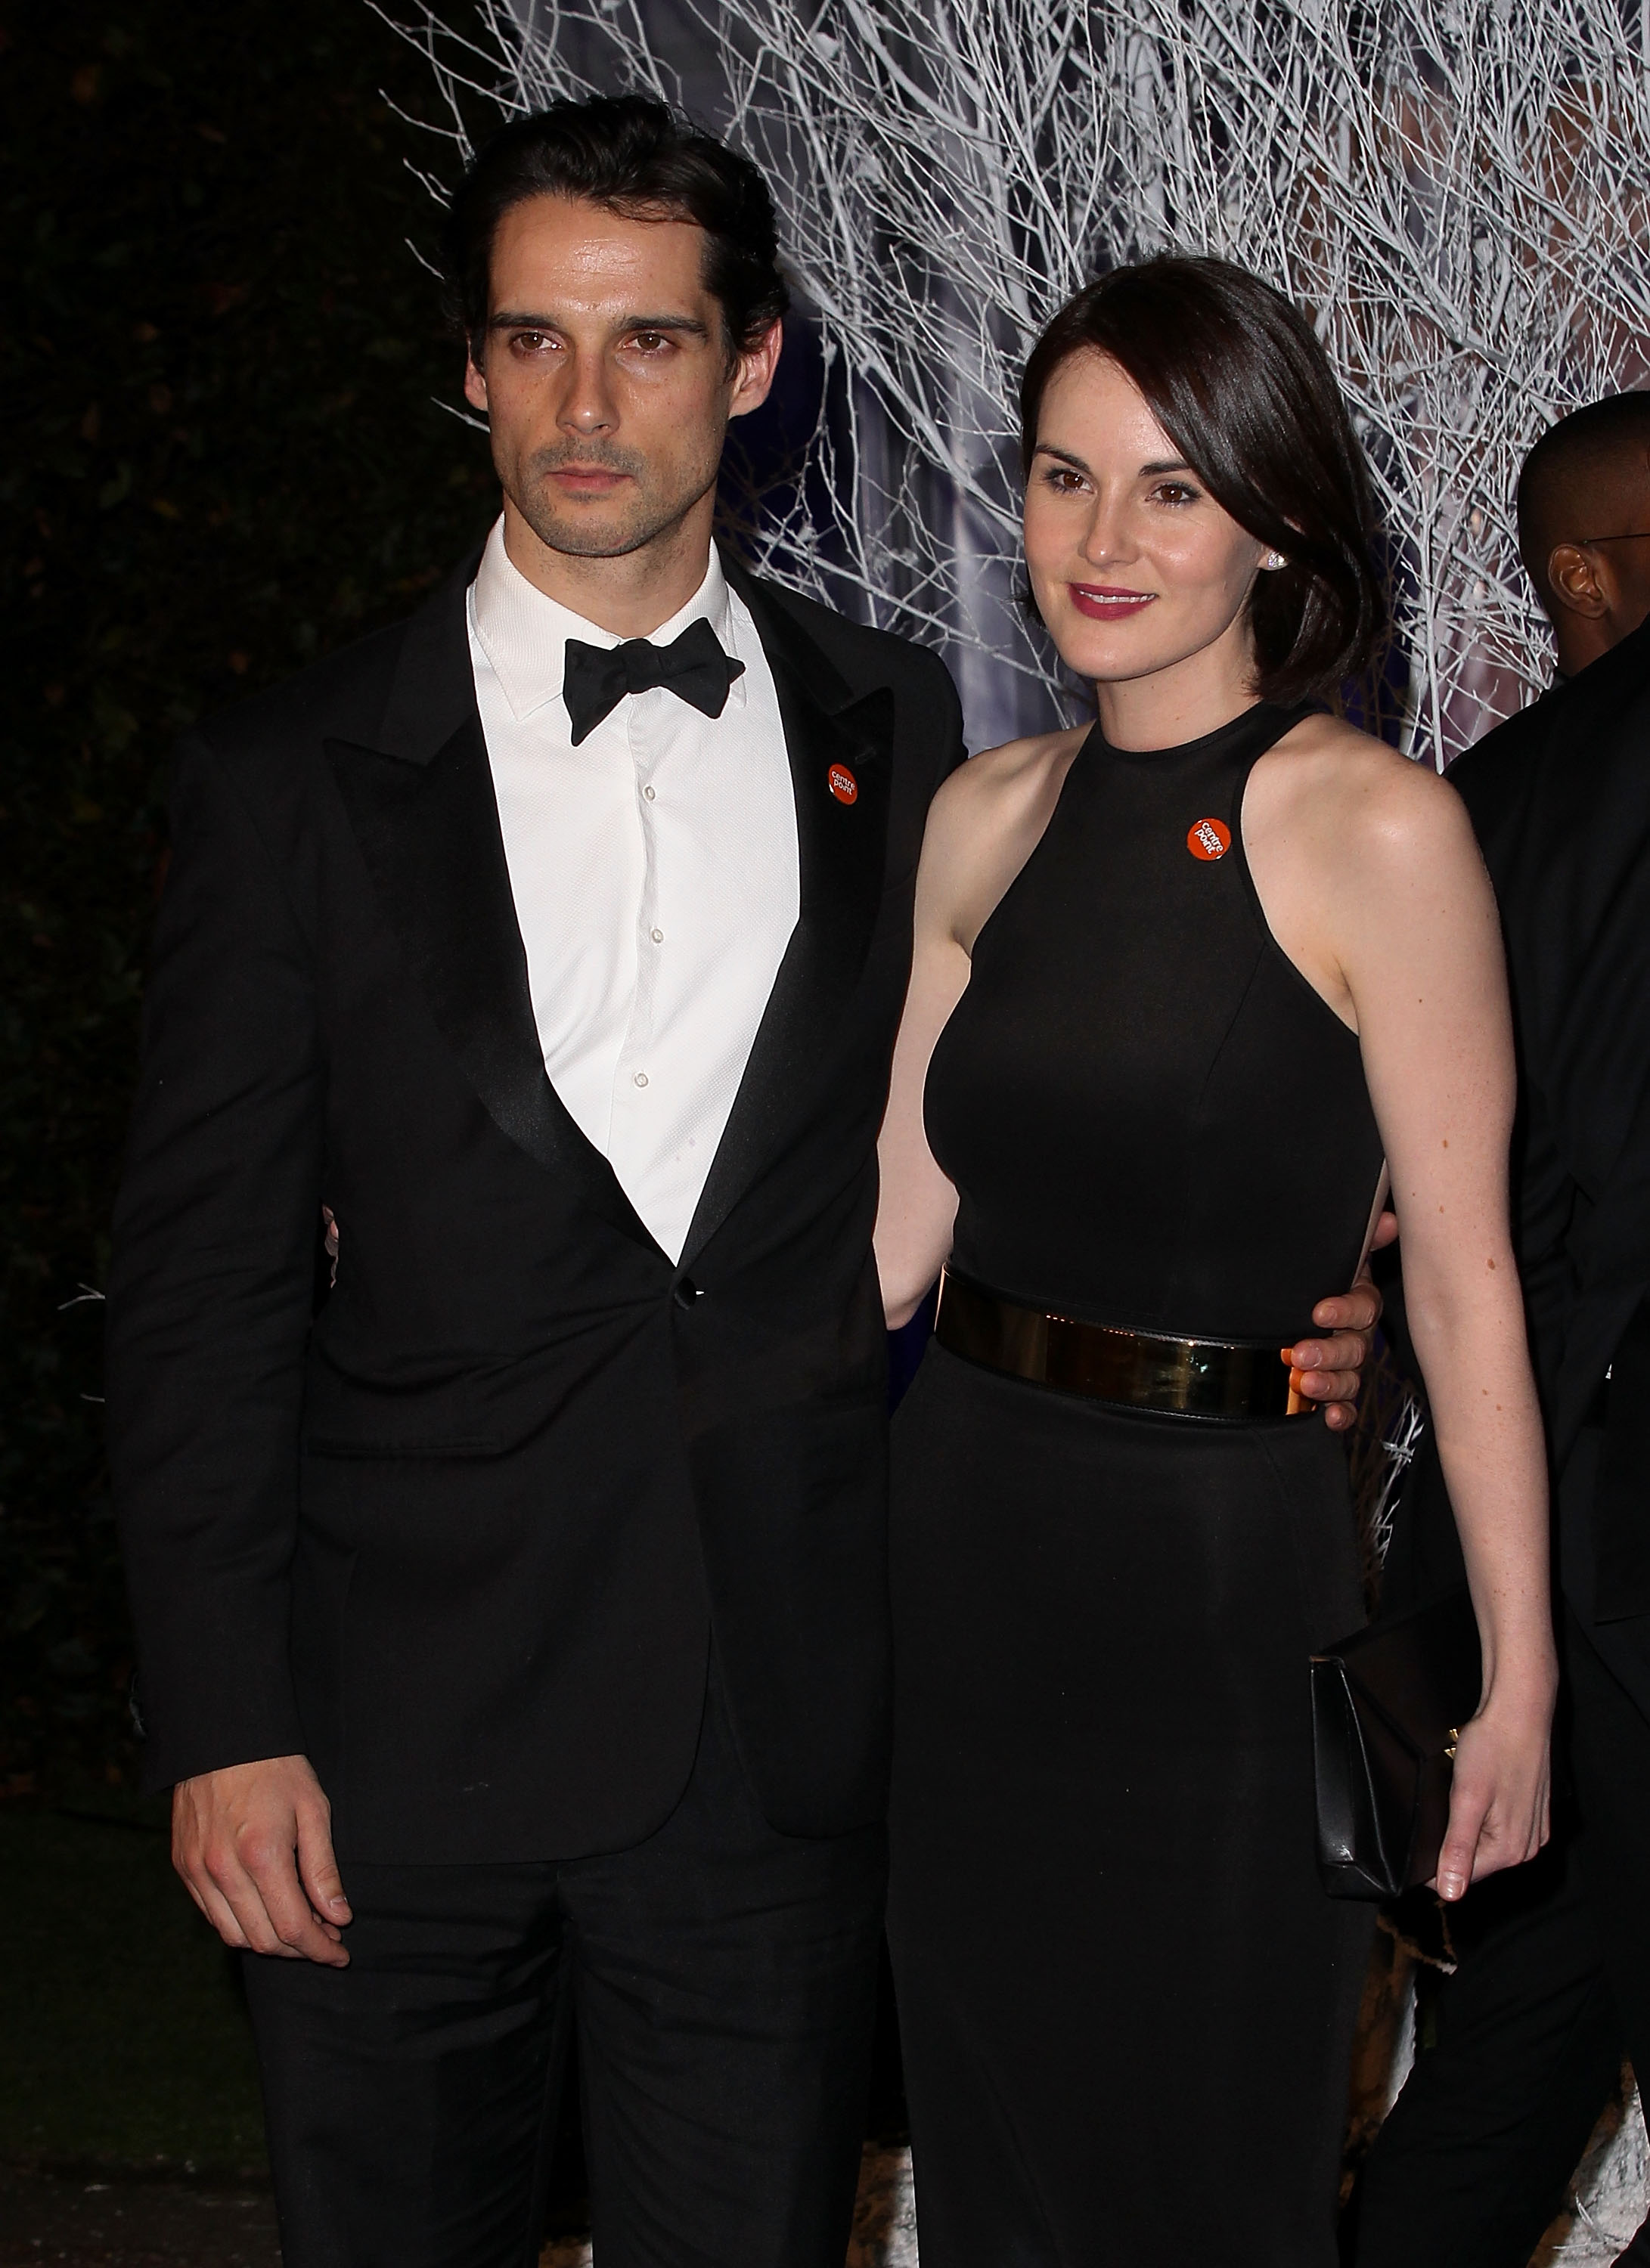 Michelle Dockery and John Dineen attend the Winter Whites Gala in aid of Centrepoint at Kensington Palace on Nov. 26, 2013 in London, England.